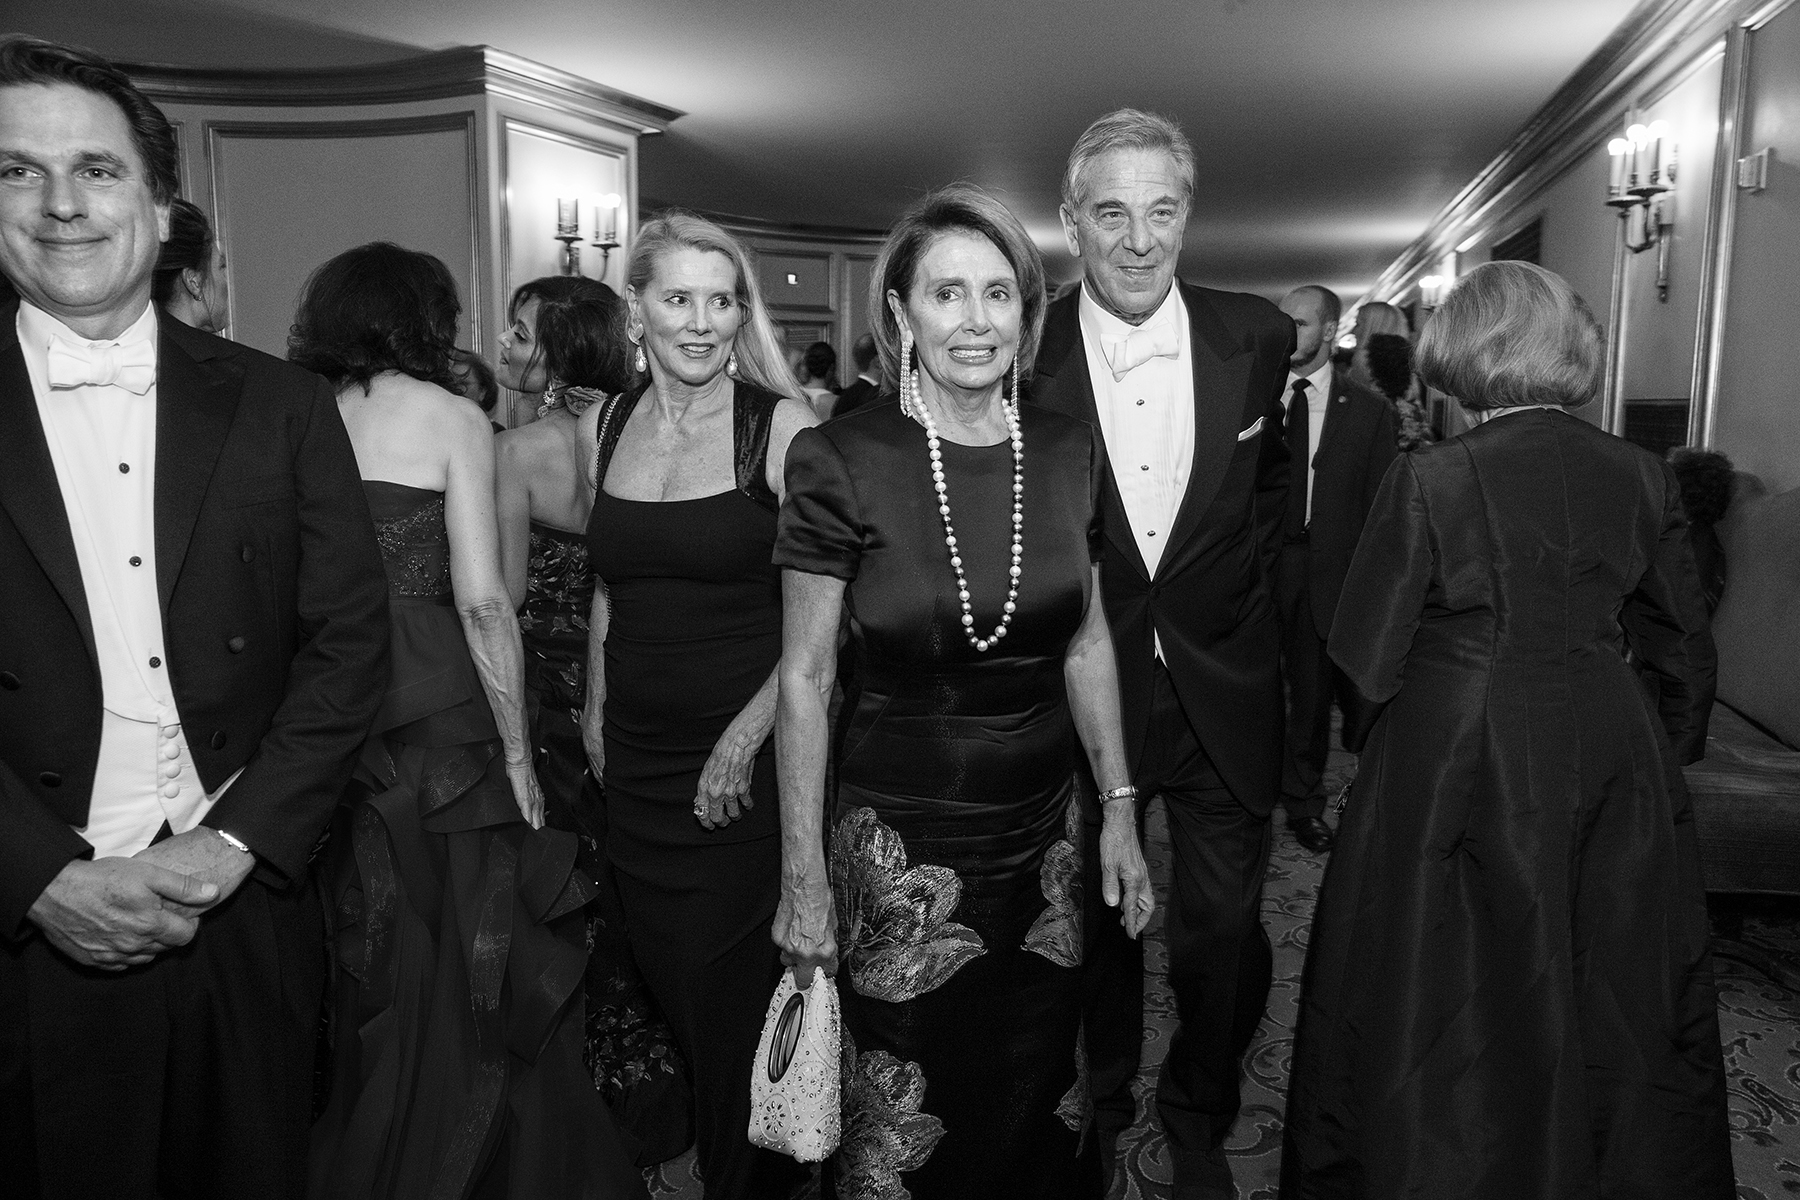 Nancy Pelosi, currently the Speaker of the United States House of Representatives, and her husband Paul Pelosi walk through the War Memorial Opera House during intermission at the San Francisco Opera Ball in San Francisco, Calif., on Friday, September 11, 2015. Pelosi represents California's 12th congressional district, which is currently entirely in the city of San Francisco. This photograph is of a candid moment and was not directed in any way.